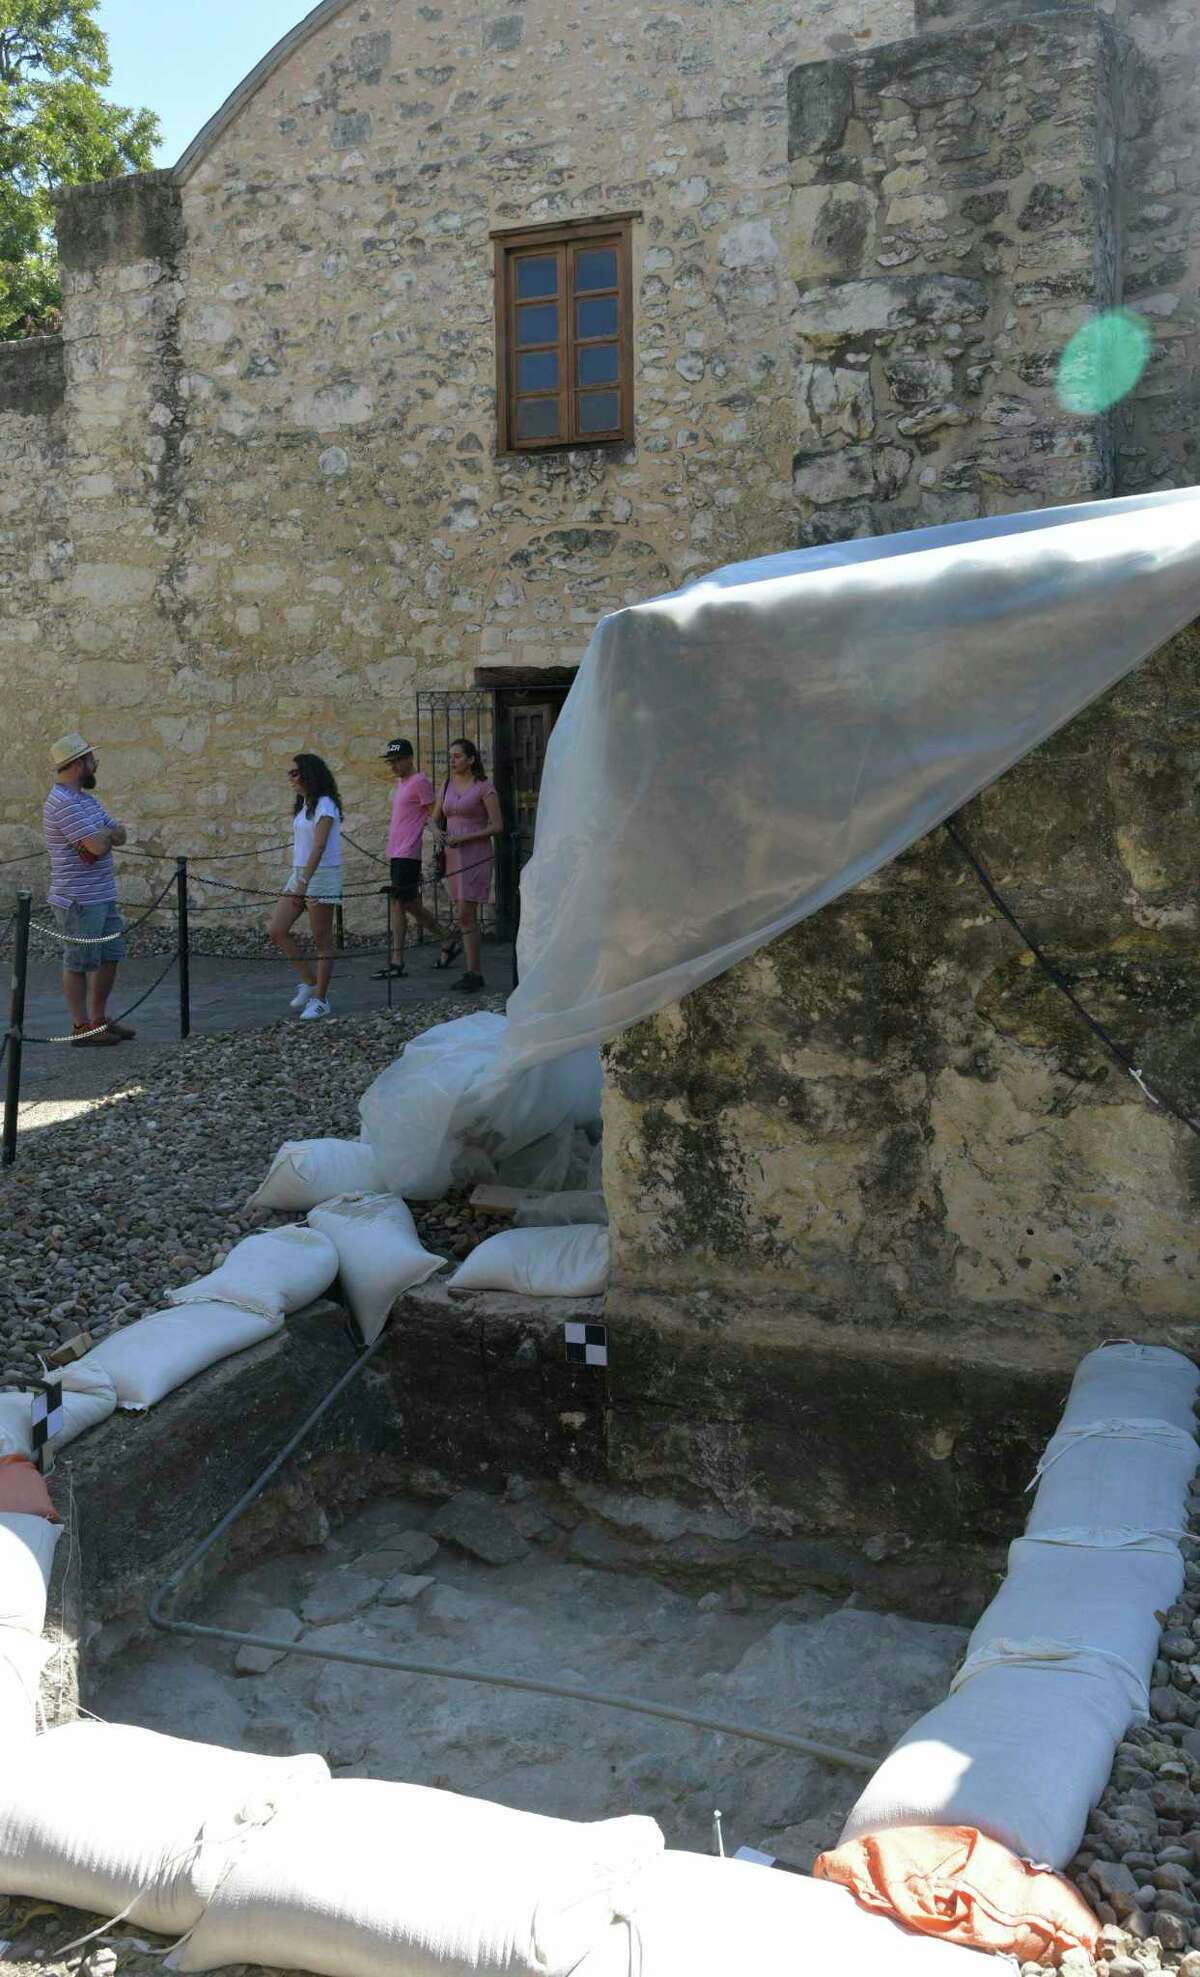 Tourists leave the Alamo, near an archaeological dig which contains what appears to be the foundation of a watchtower on Thursday, Oct. 10, 2019. The tower is shown on two historic maps drawn by Edward Everett, one dating to 1846 and the second dating to 1848.